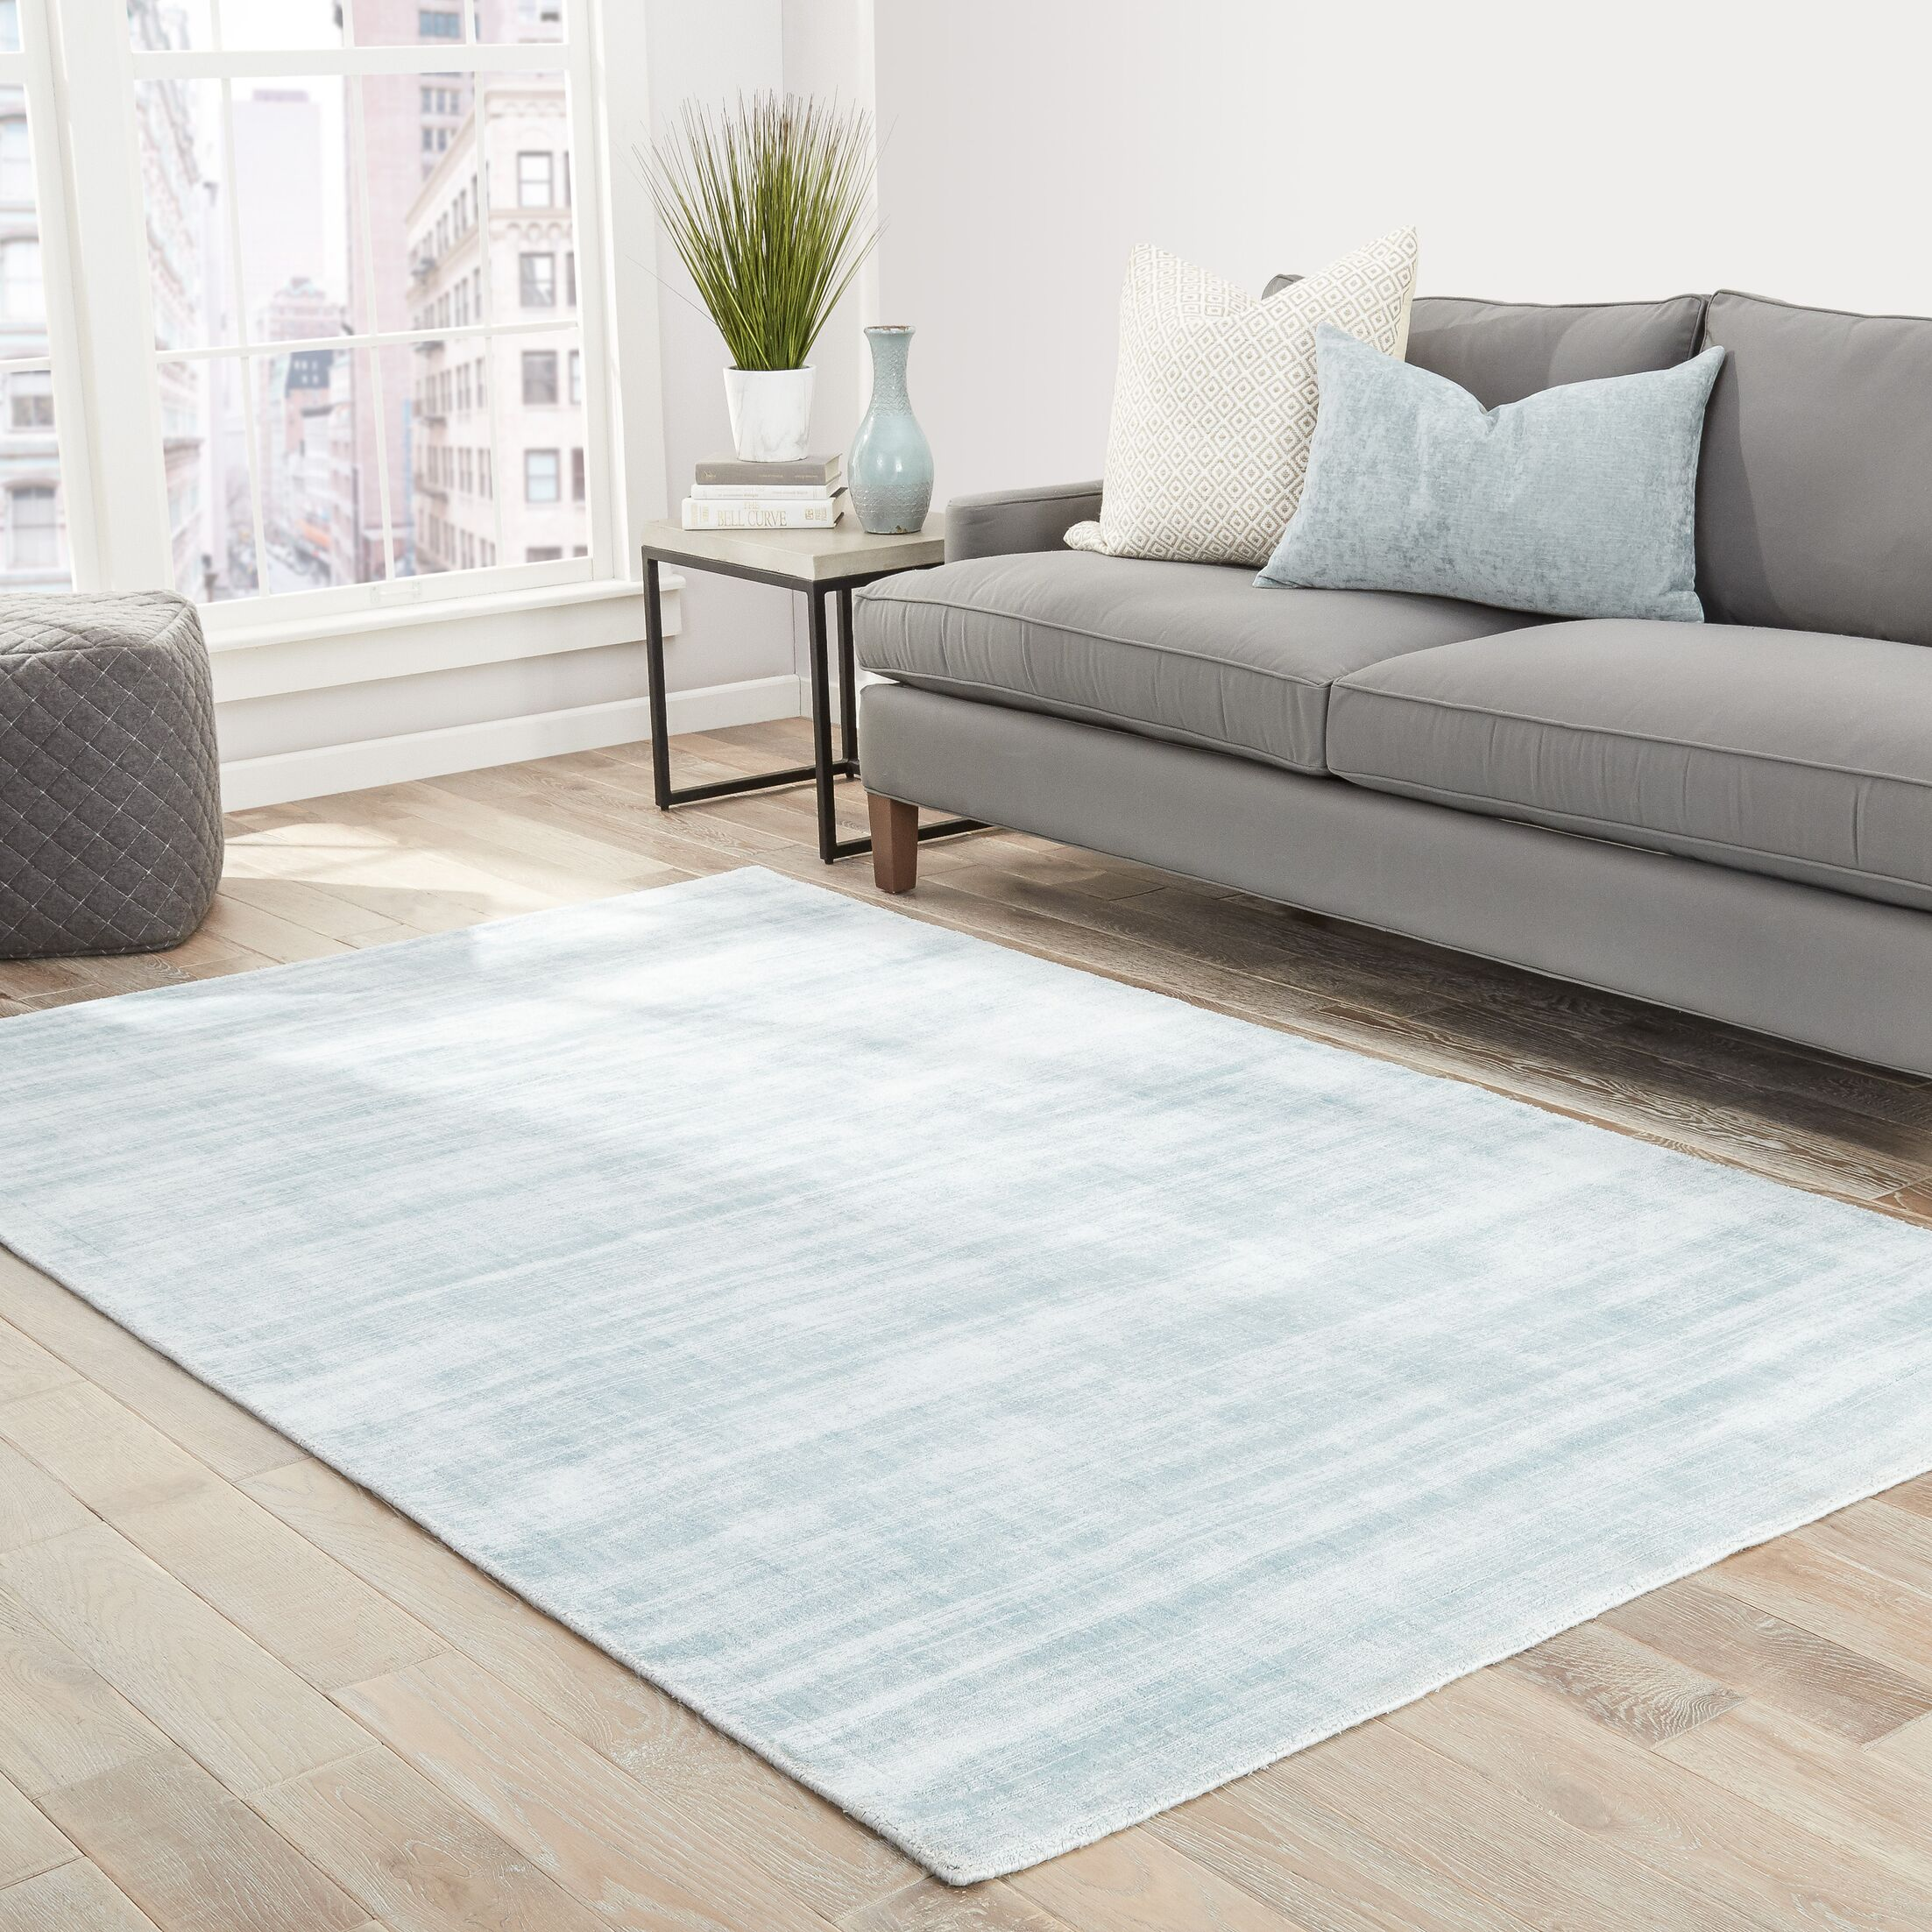 Sara Hand-Woven Gray-blue Area Rug Rug Size: Rectangle 9' x 12'